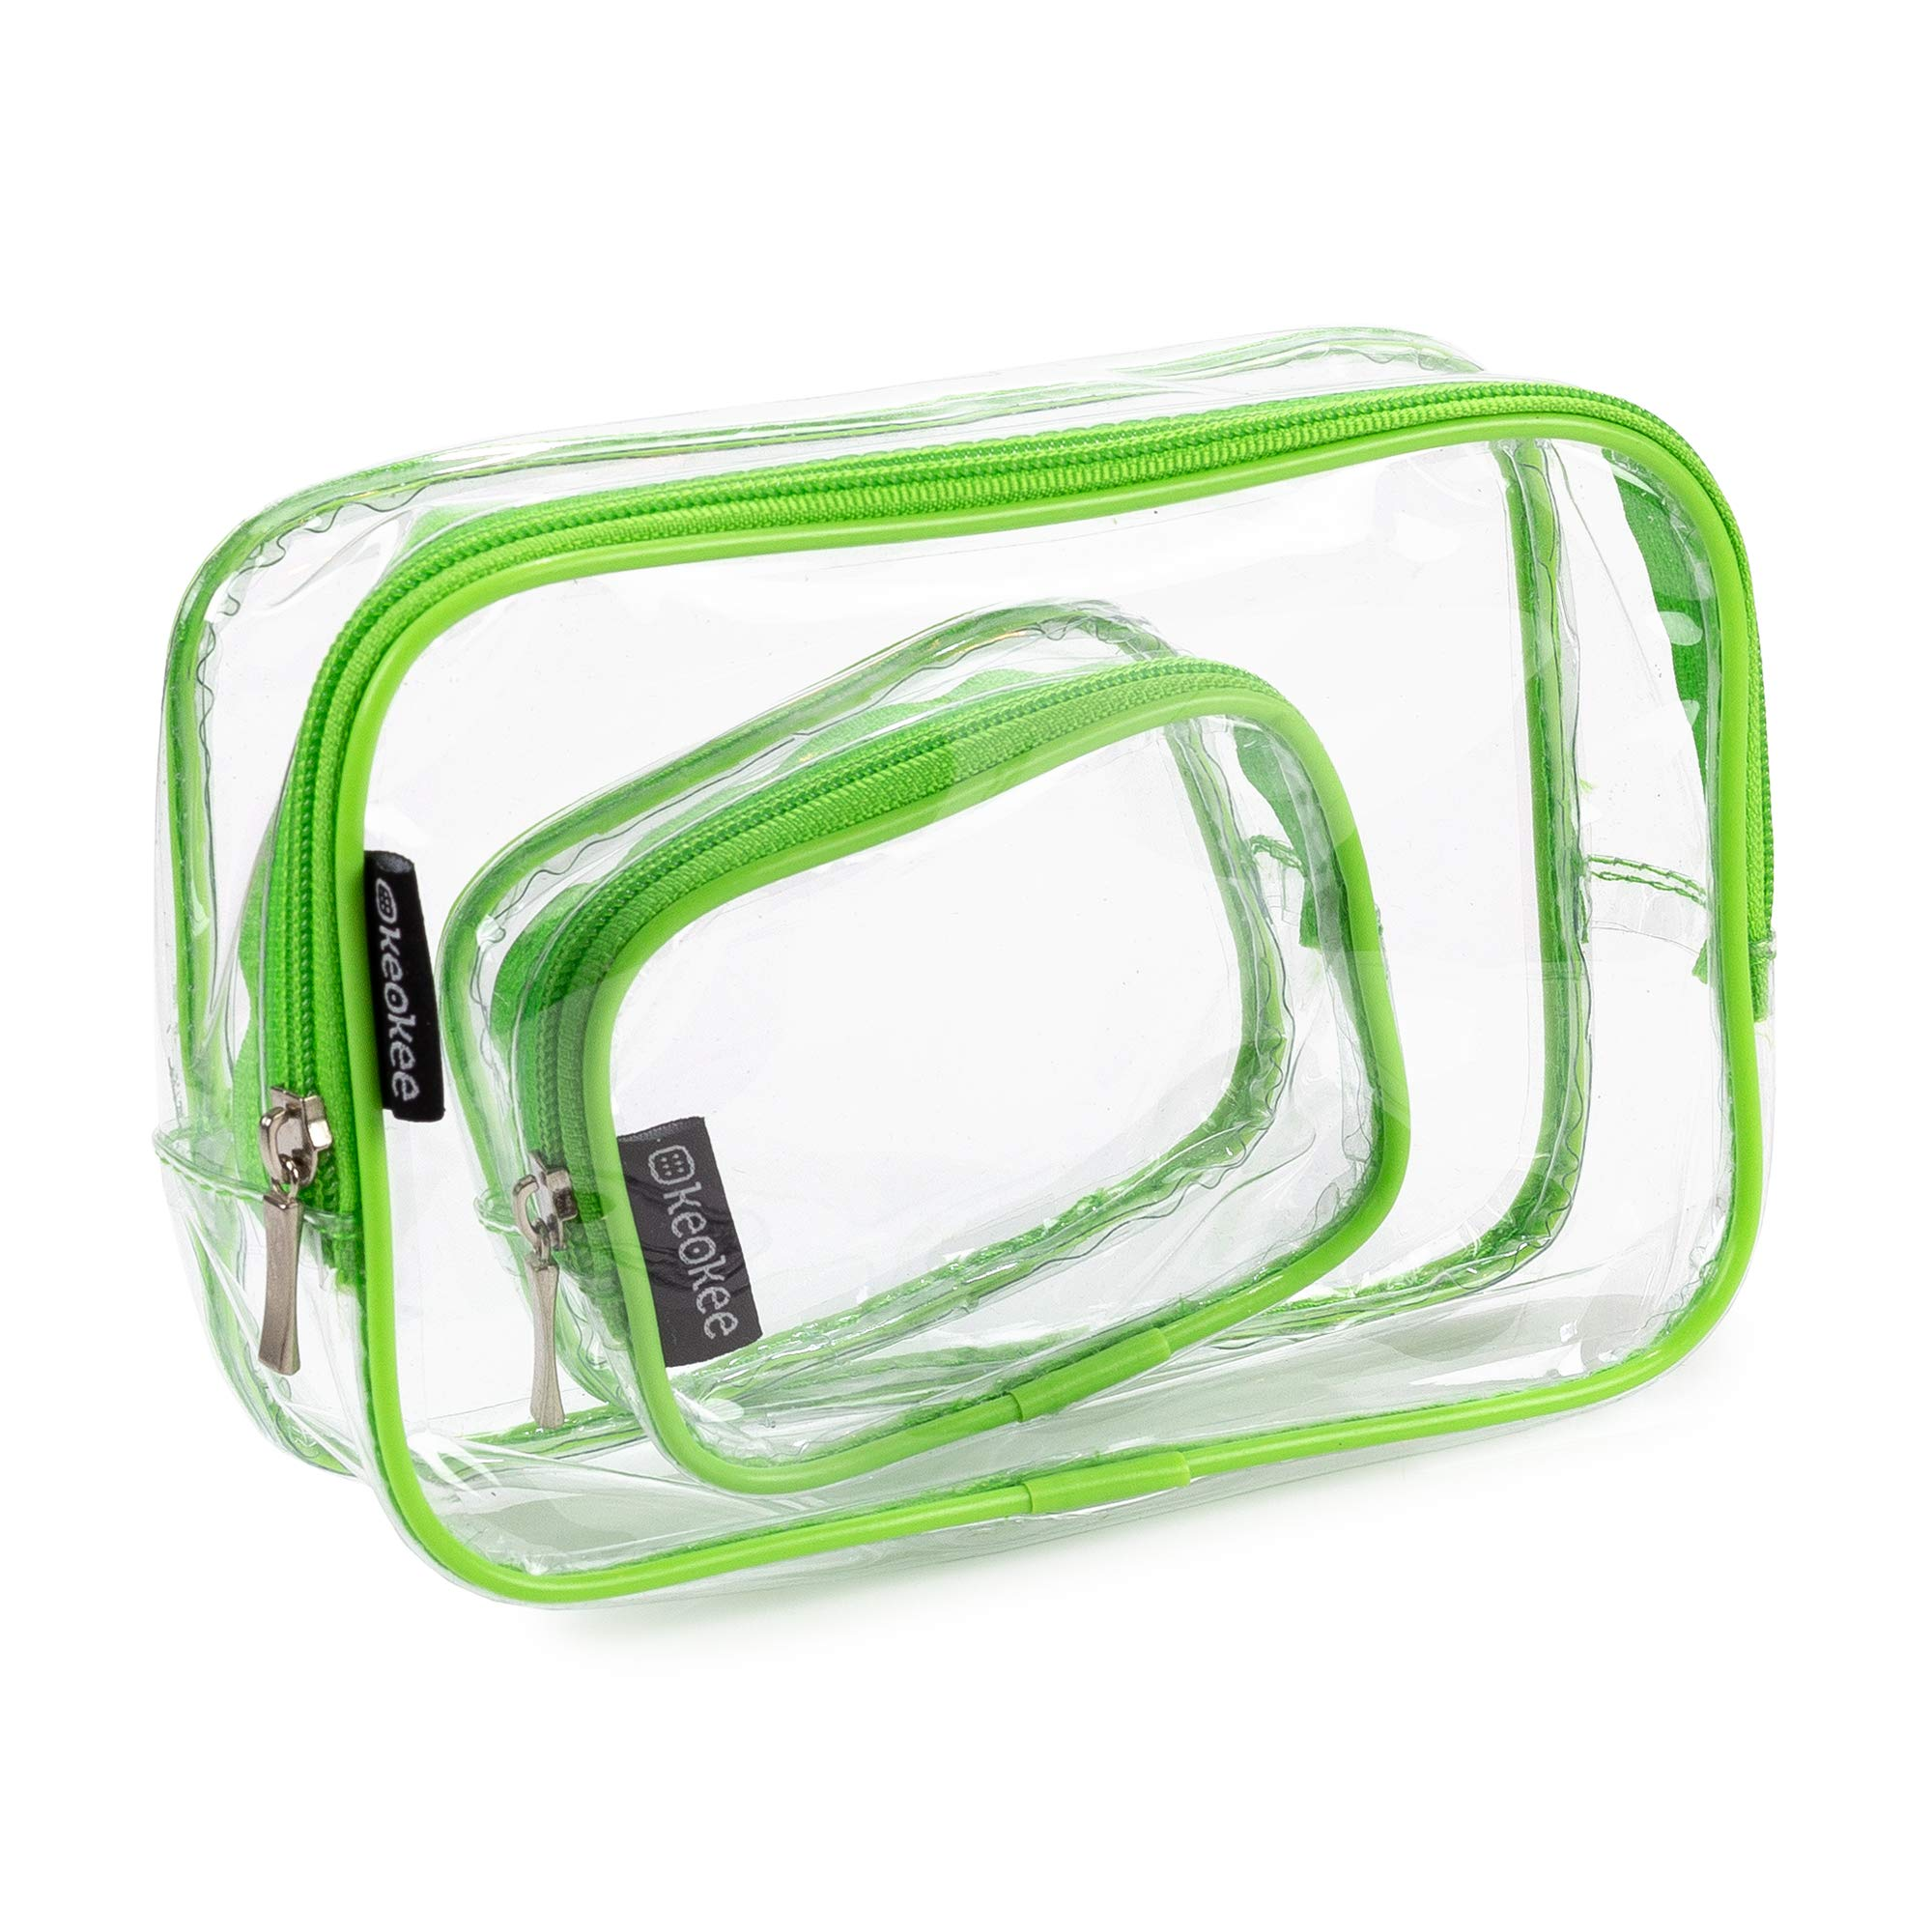 Keokee Clear Toiletry Bag Set, Quart Size with Smaller Case for Travel and Organizing, TSA Approved for 3-1-1 Liquids (Green)